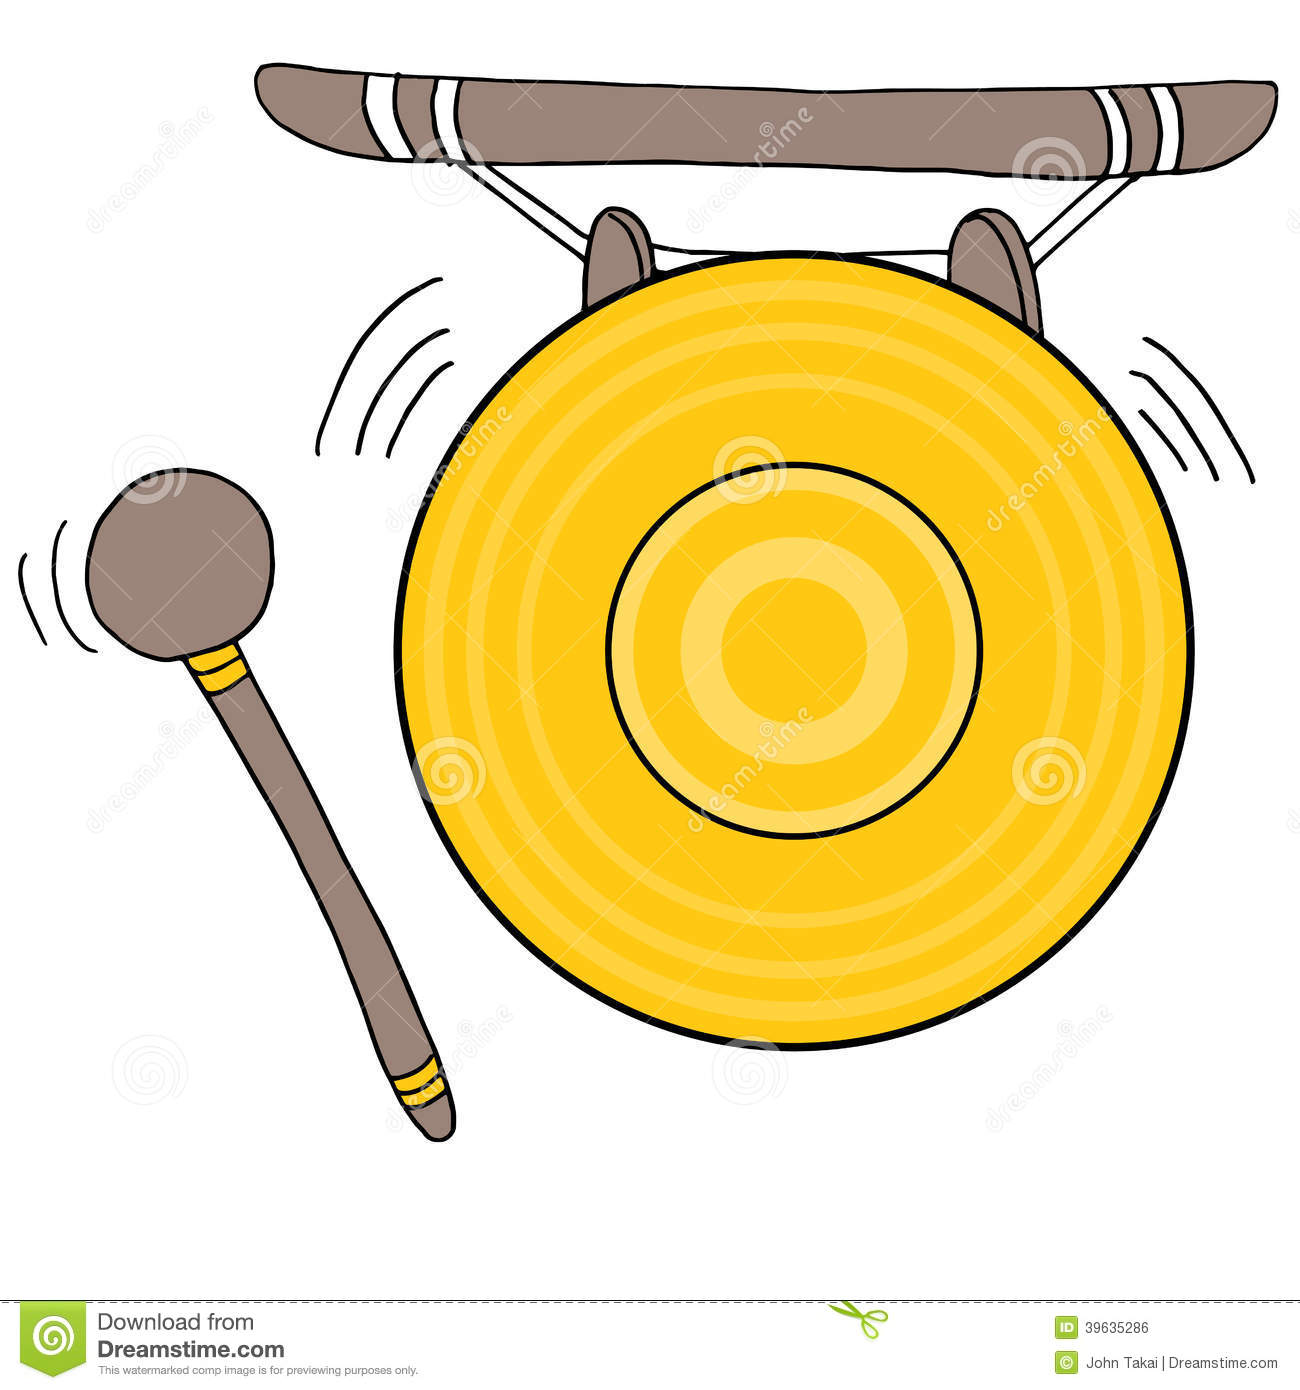 Chinese Gong Stock Vector - Image: 39635286